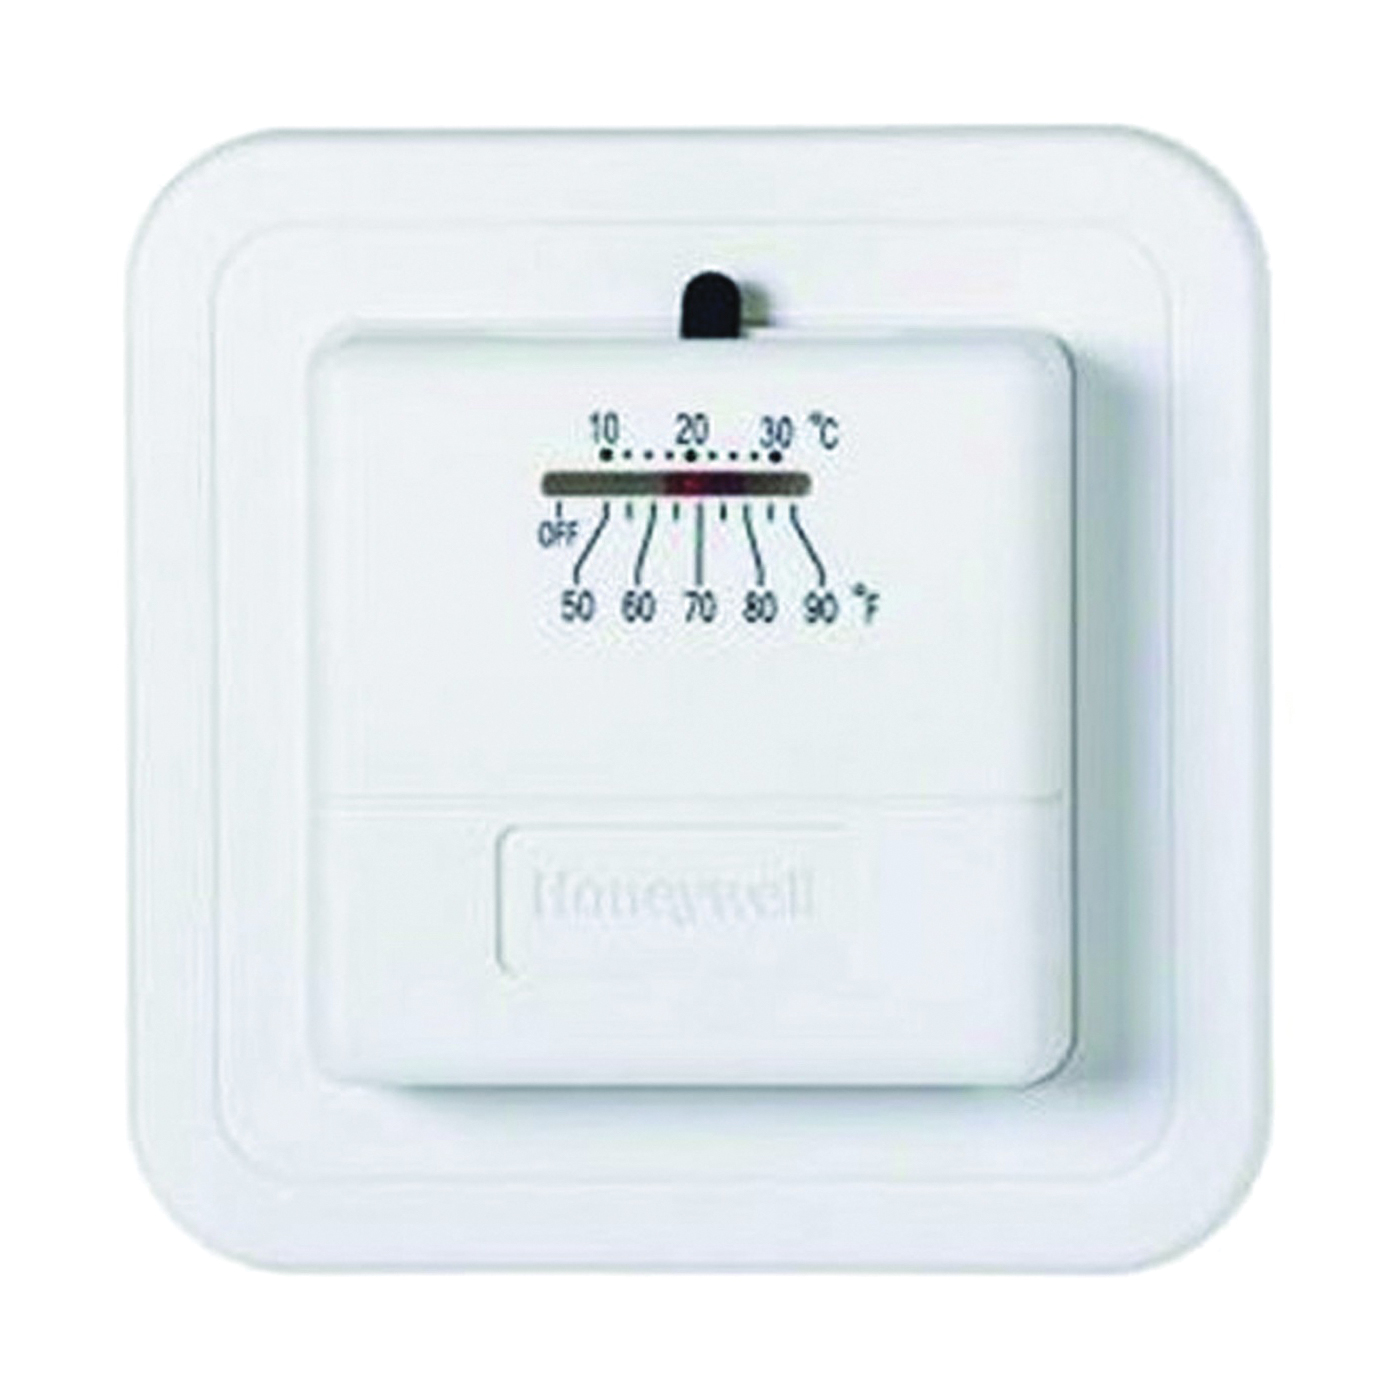 Honeywell CT33A1009/E1